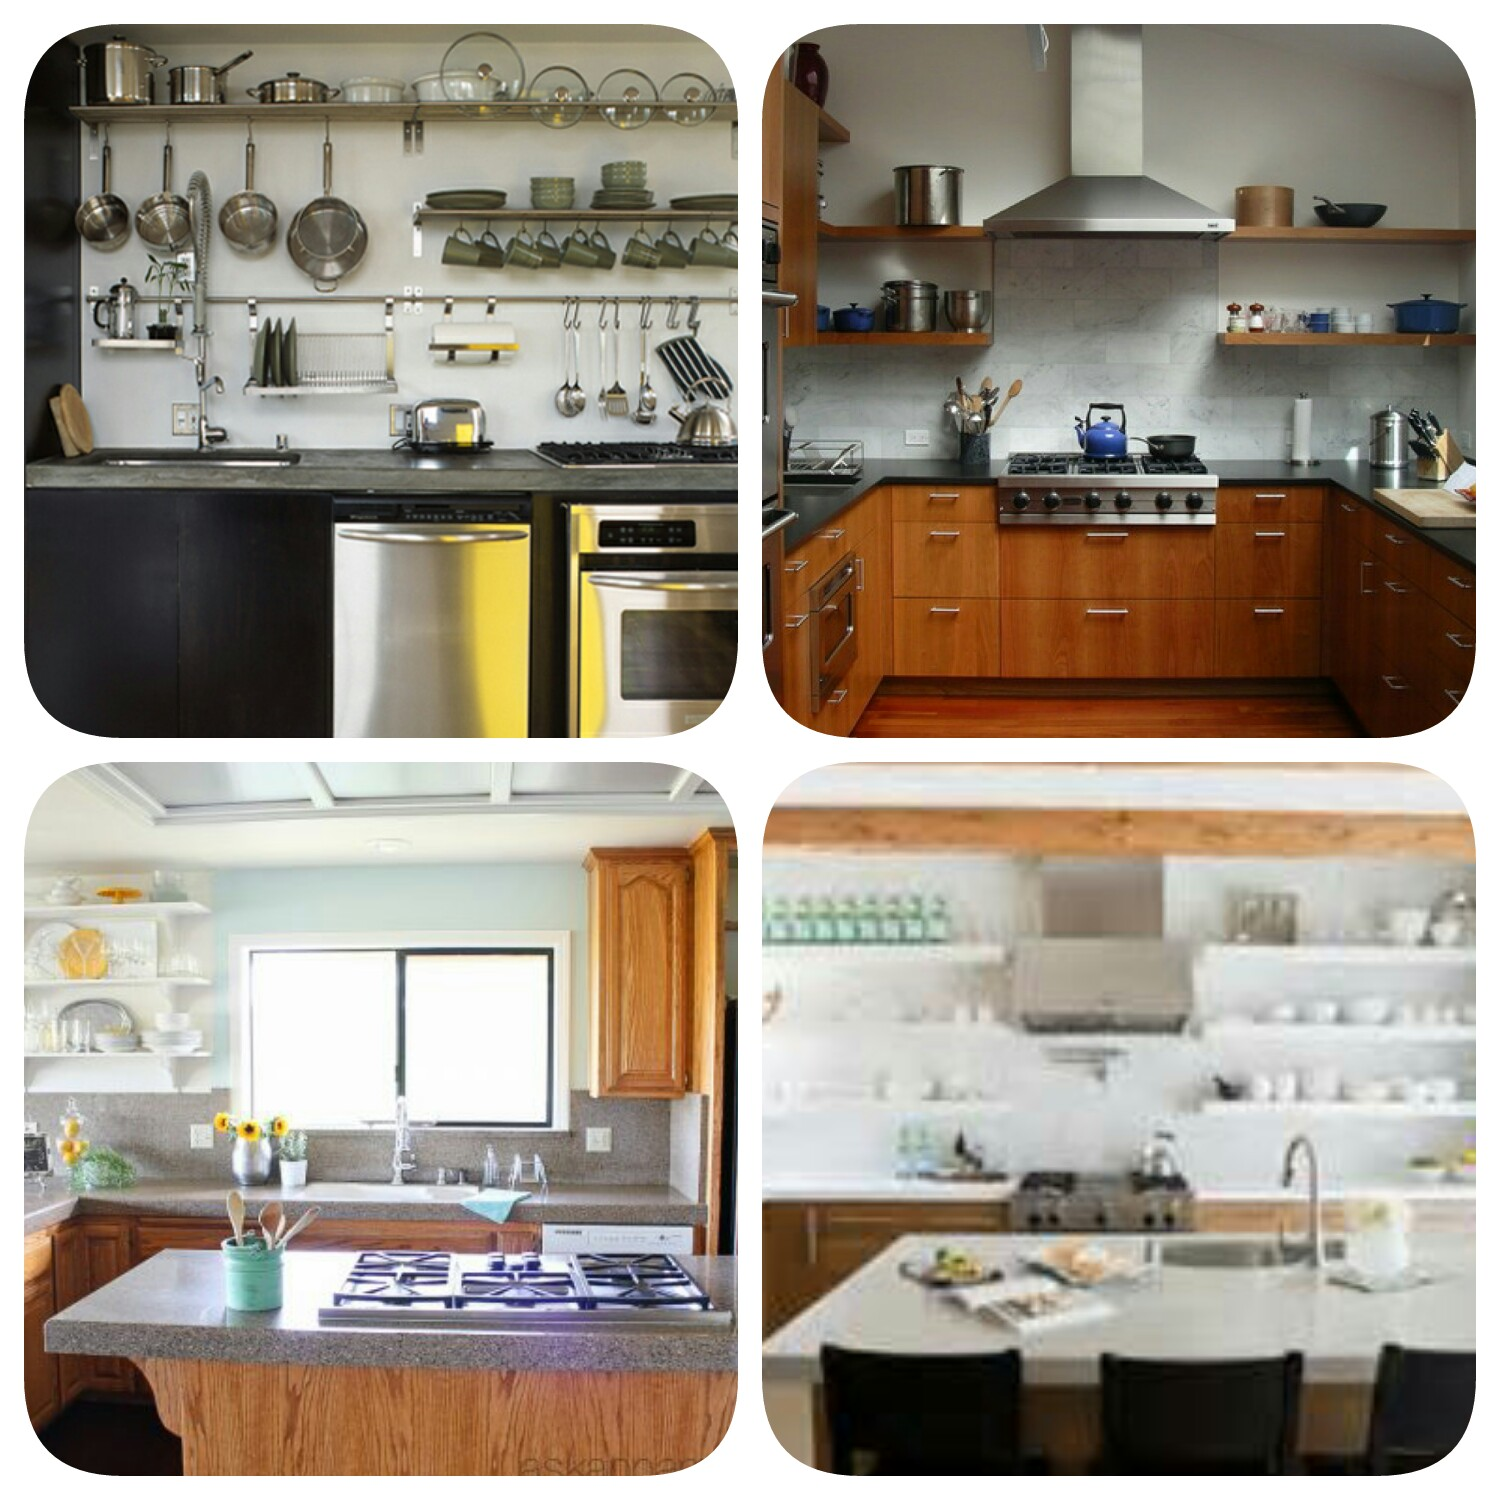 Open Shelves In Indian Kitchens Are A Big Hit! Here's Why